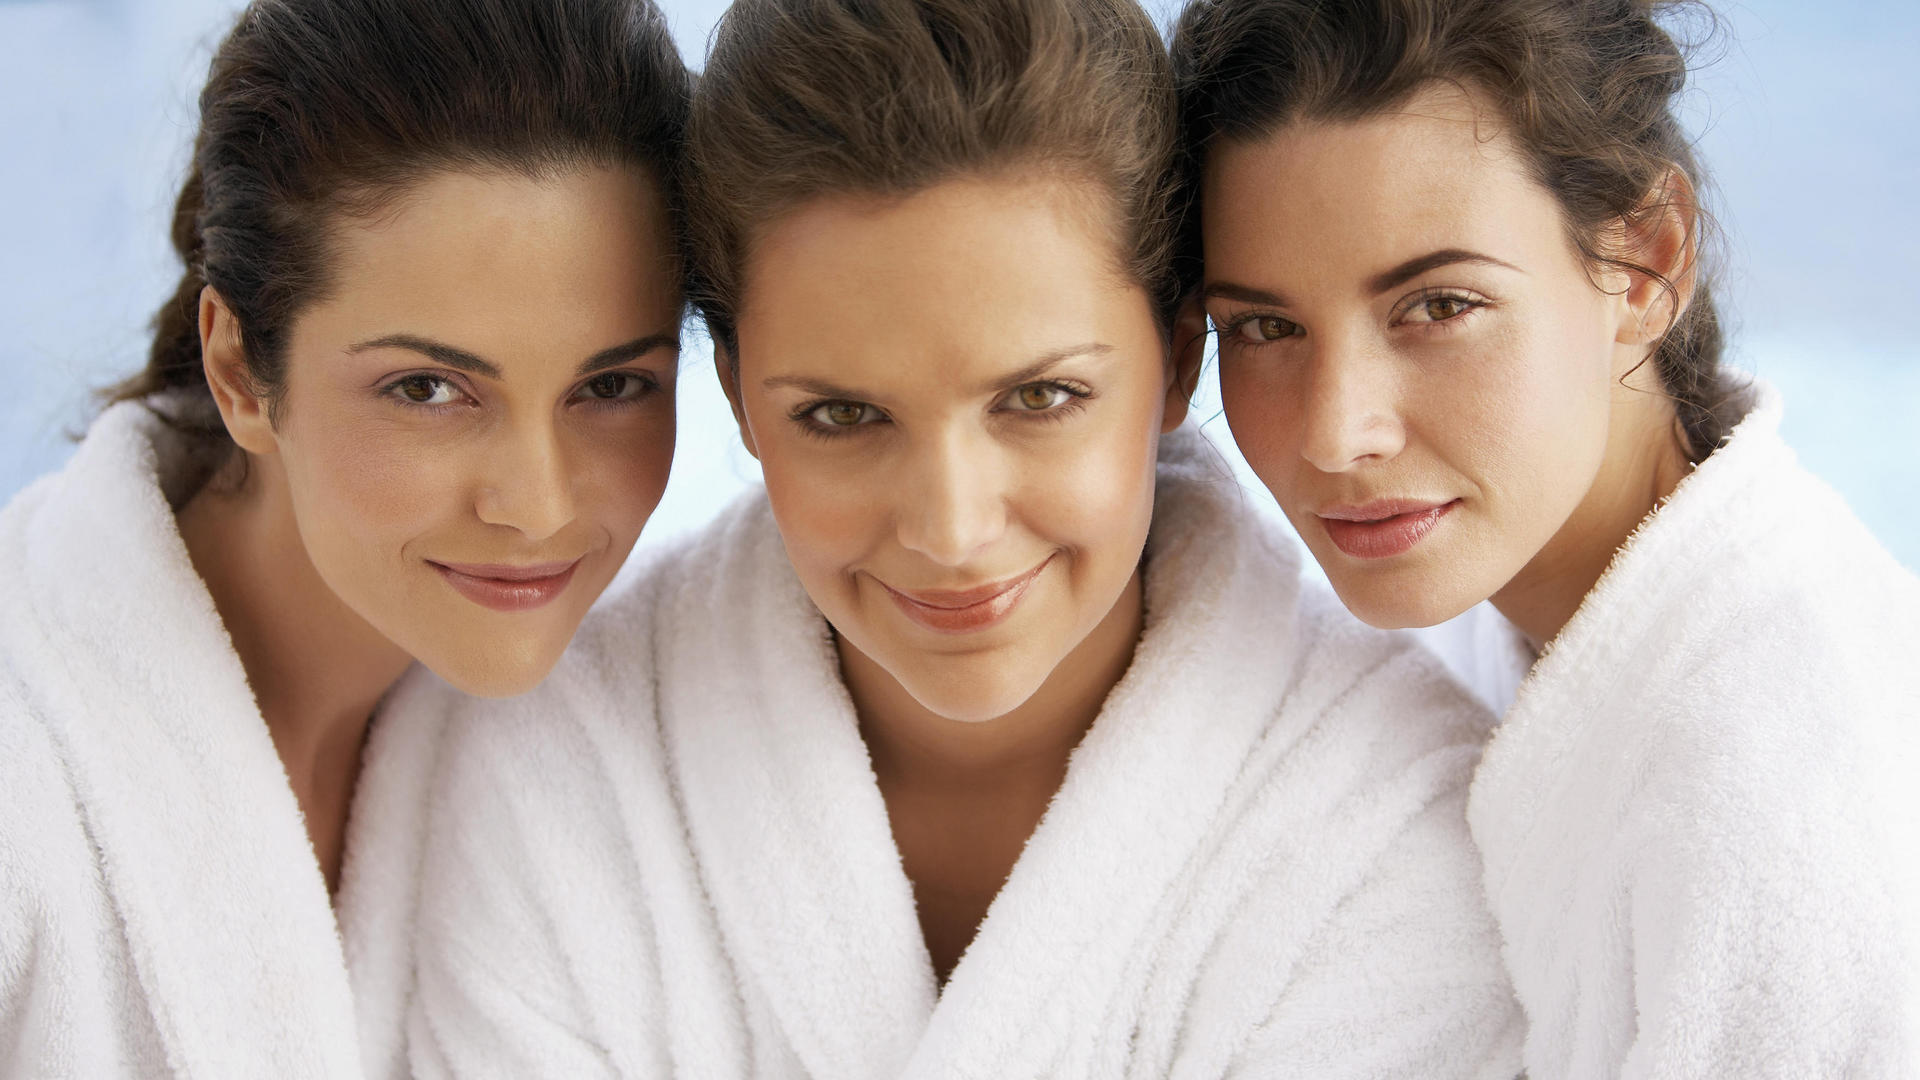 Spa Packages at Chaminade Resort & Spa in Santa Cruz, CA